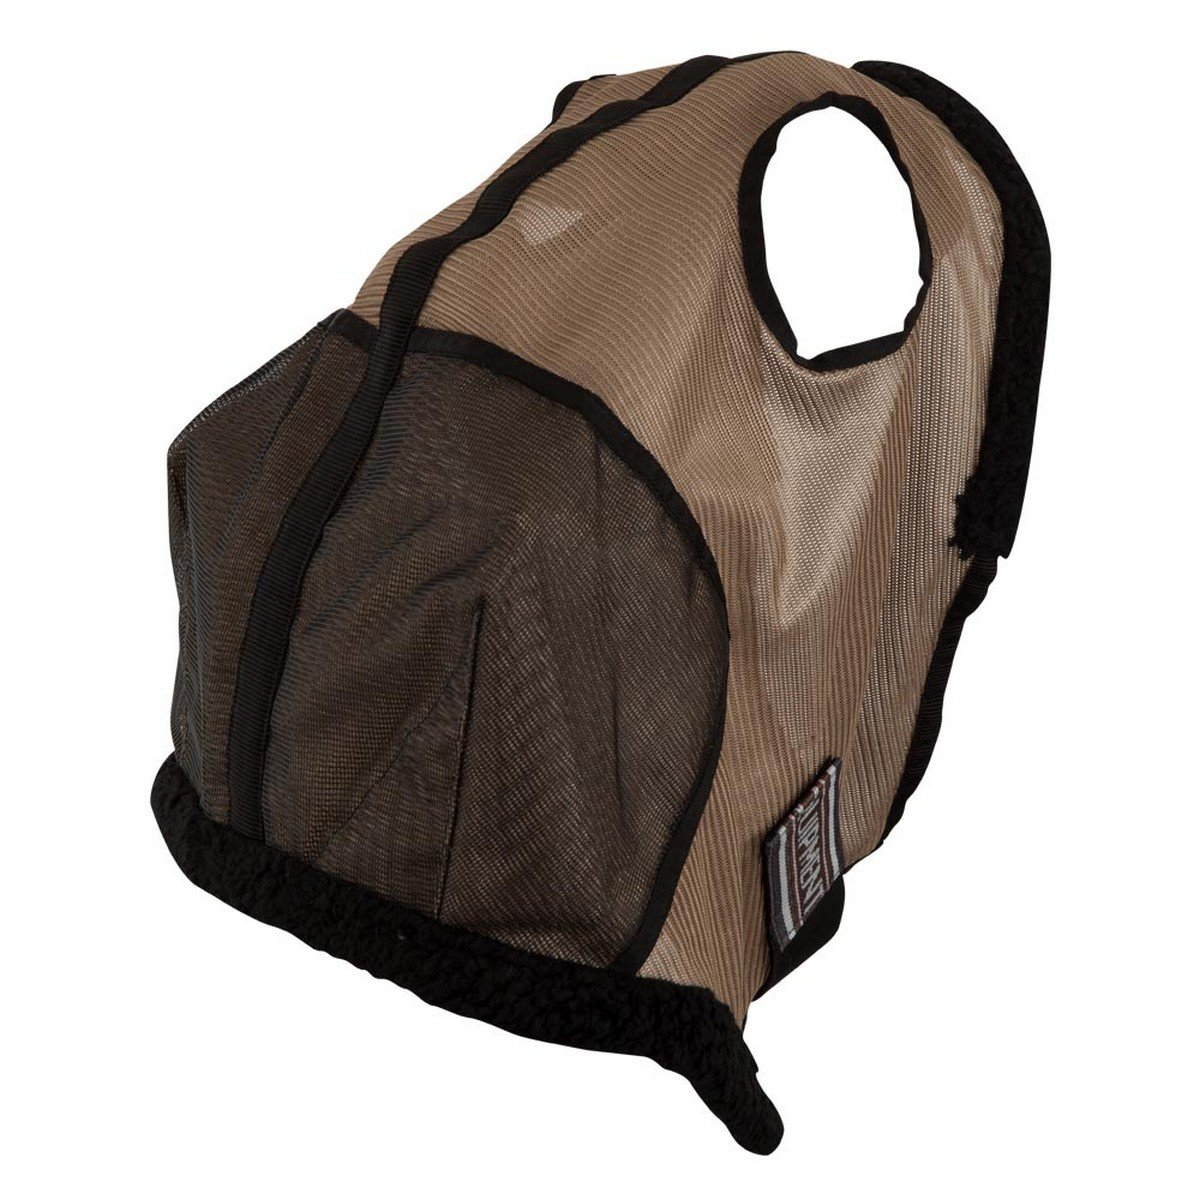 Imagem de BR Fly Mask Passion without Ears Shell Cob